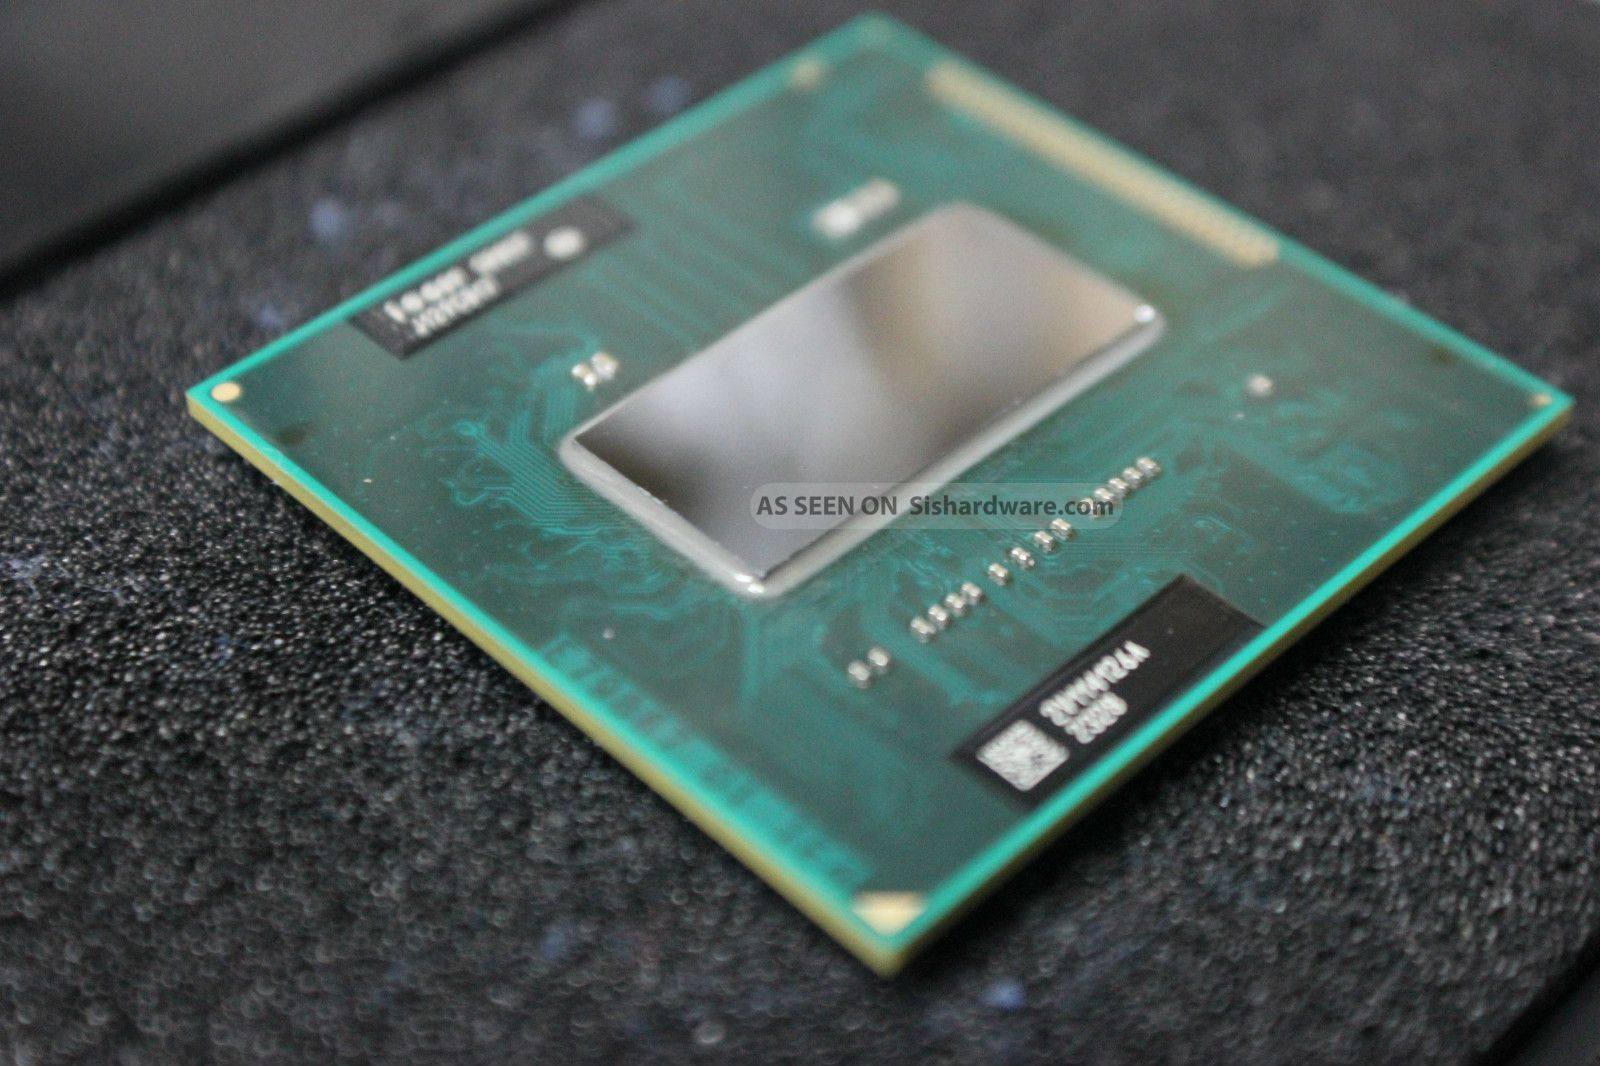 oem_intel_core_i7_2920xm_sr02e_laptop_cpu_processor_alienware_asus_2___5_ghz_2_lgw